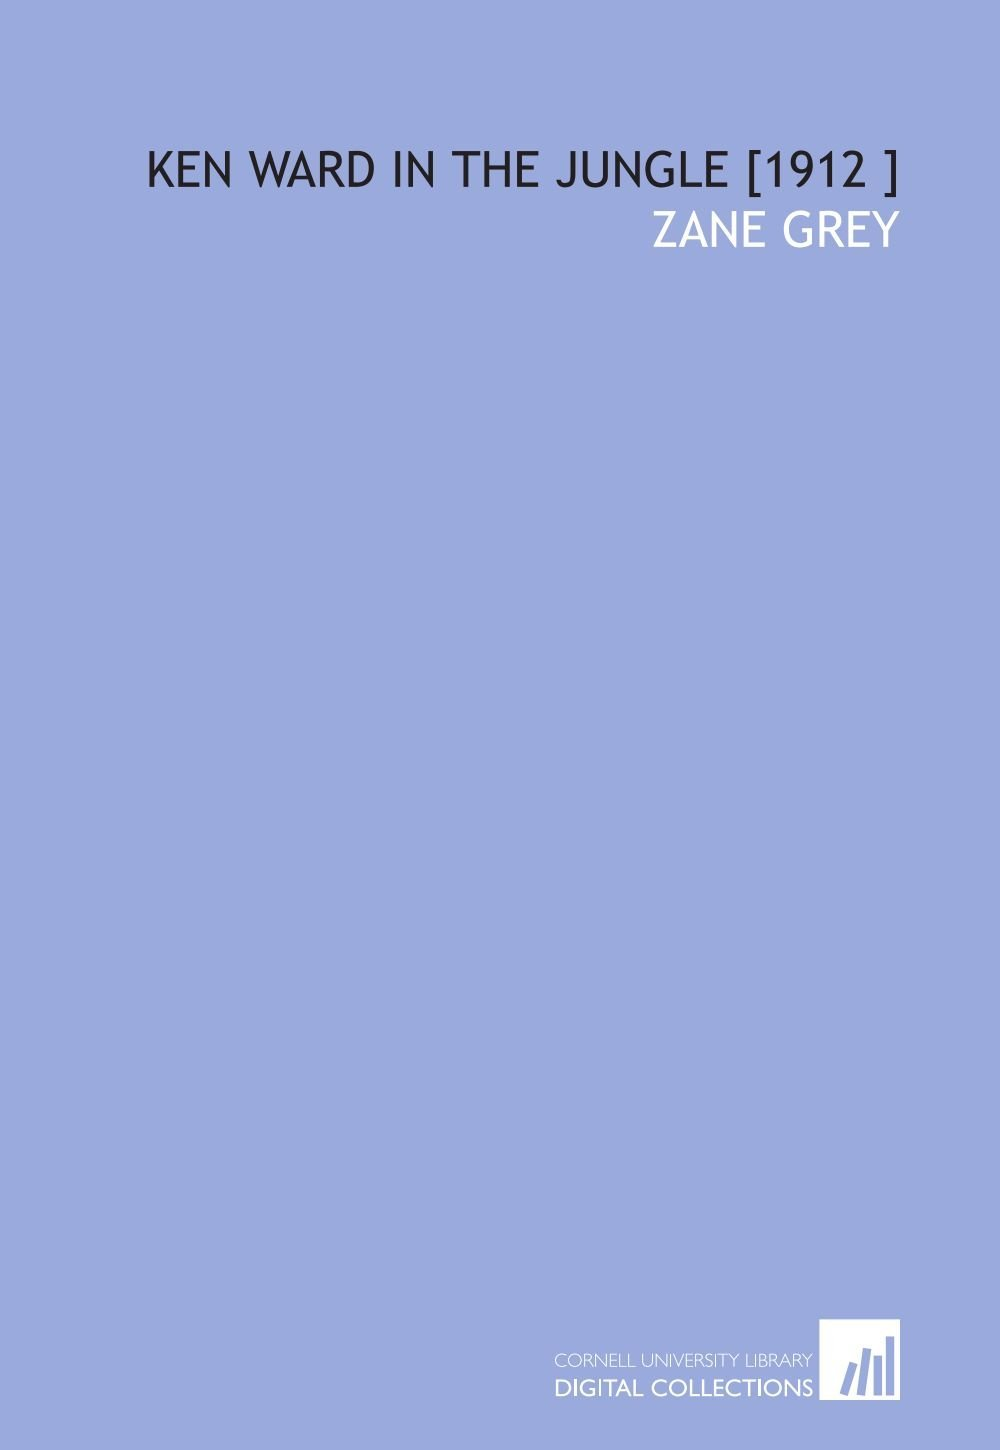 Ken Ward in the Jungle  [Paperback] by Grey, Zane